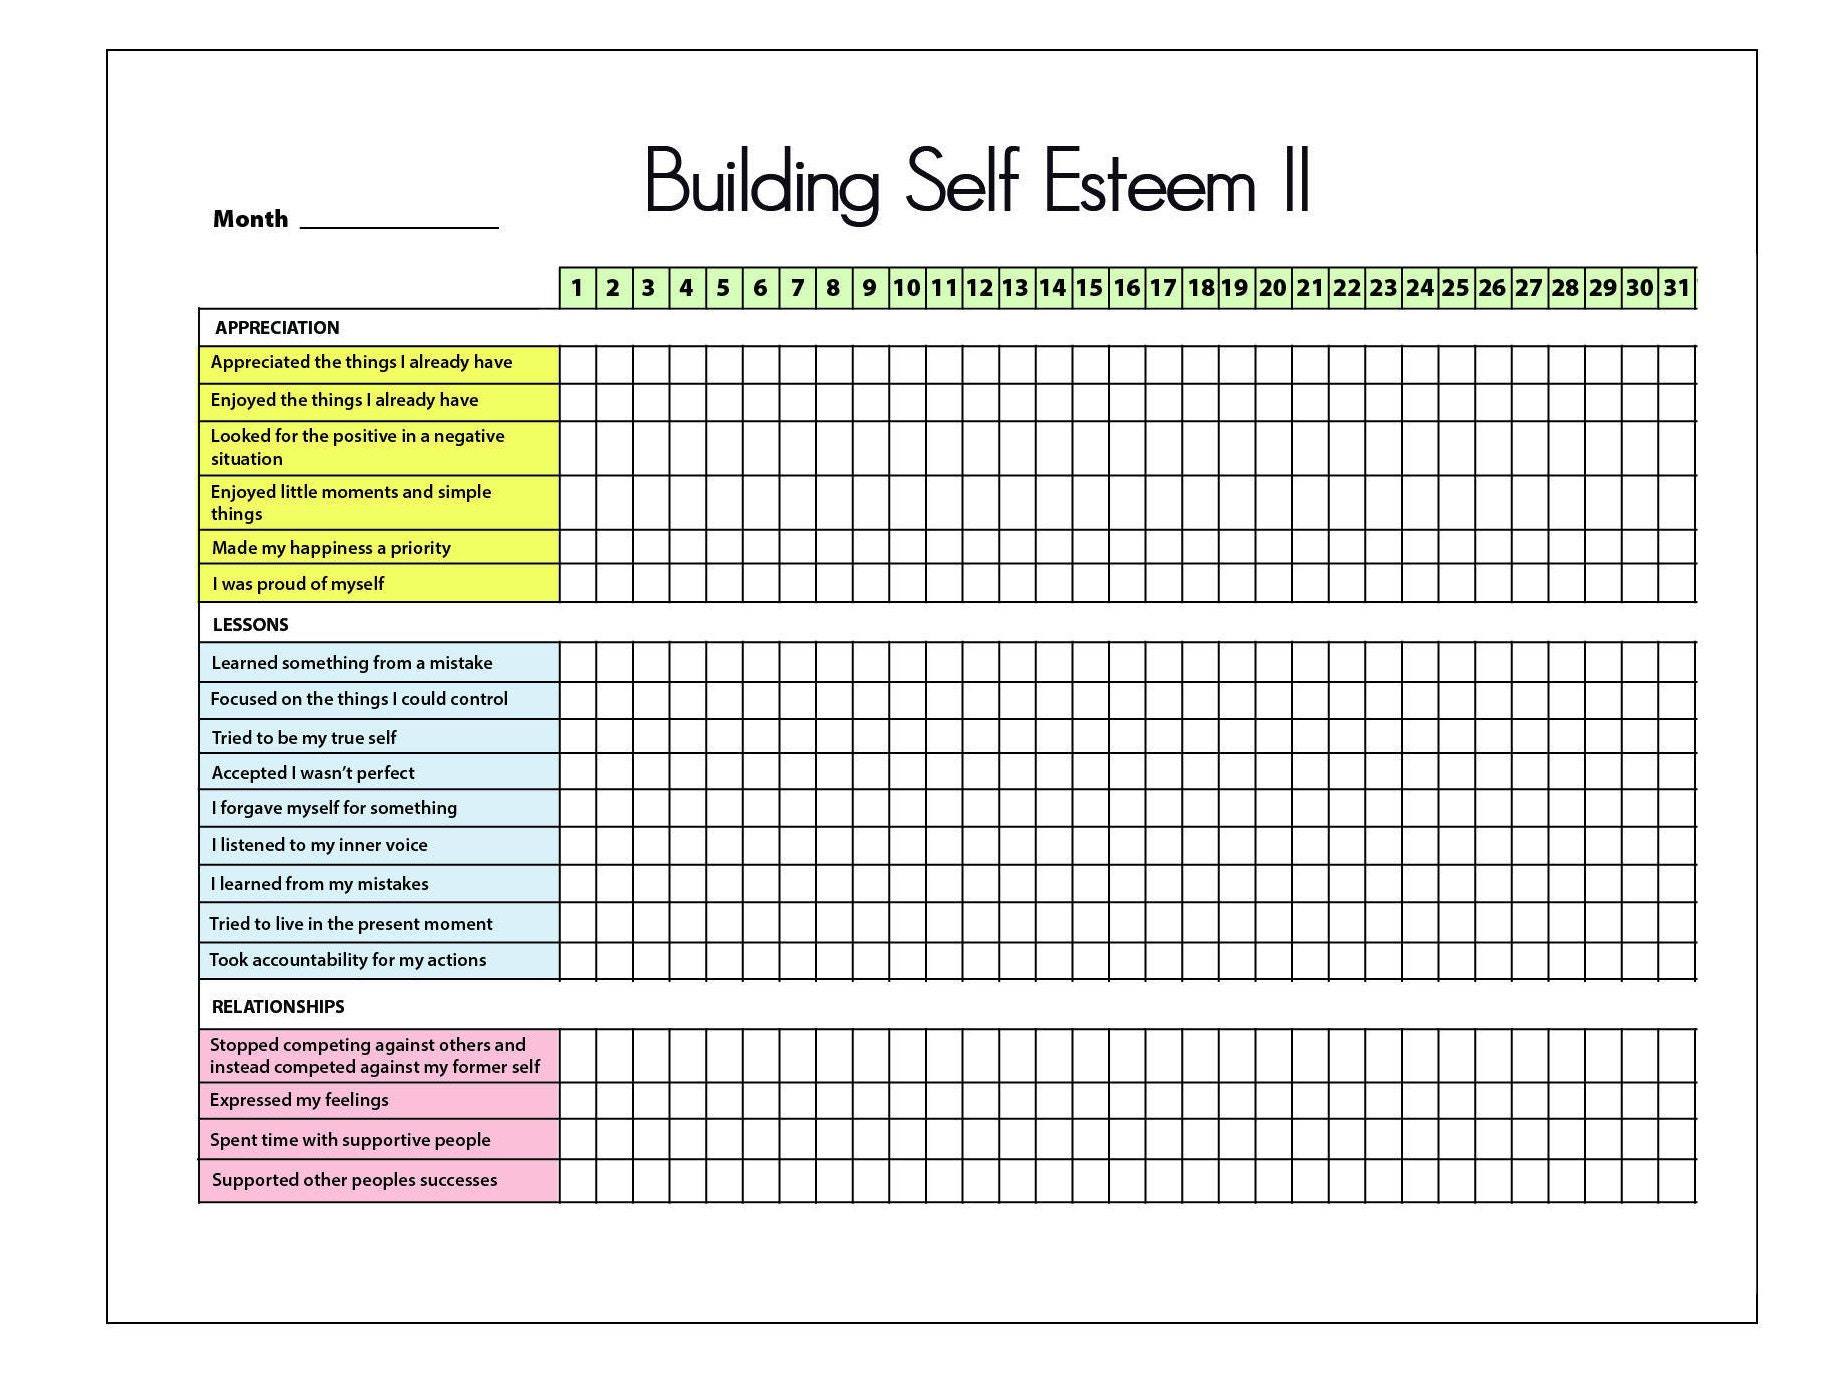 worksheet Printable Self Esteem Worksheets self esteem ii printable tracker journal mental health self